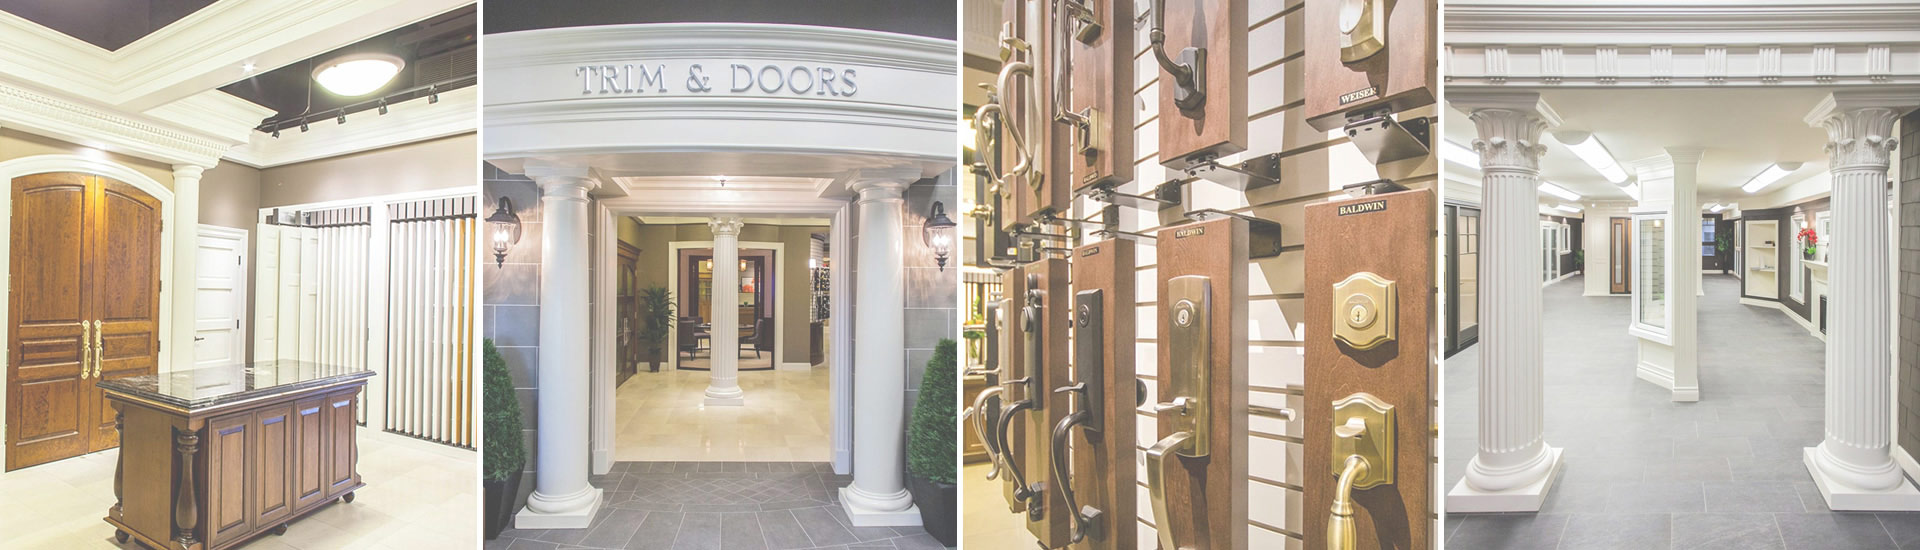 Visit Turkstra Designer Showcase - Located in Stoney Creek has a vast collection of windows, trims, doors, hardware, columns, siding, decking already built and installed for your project ideas.